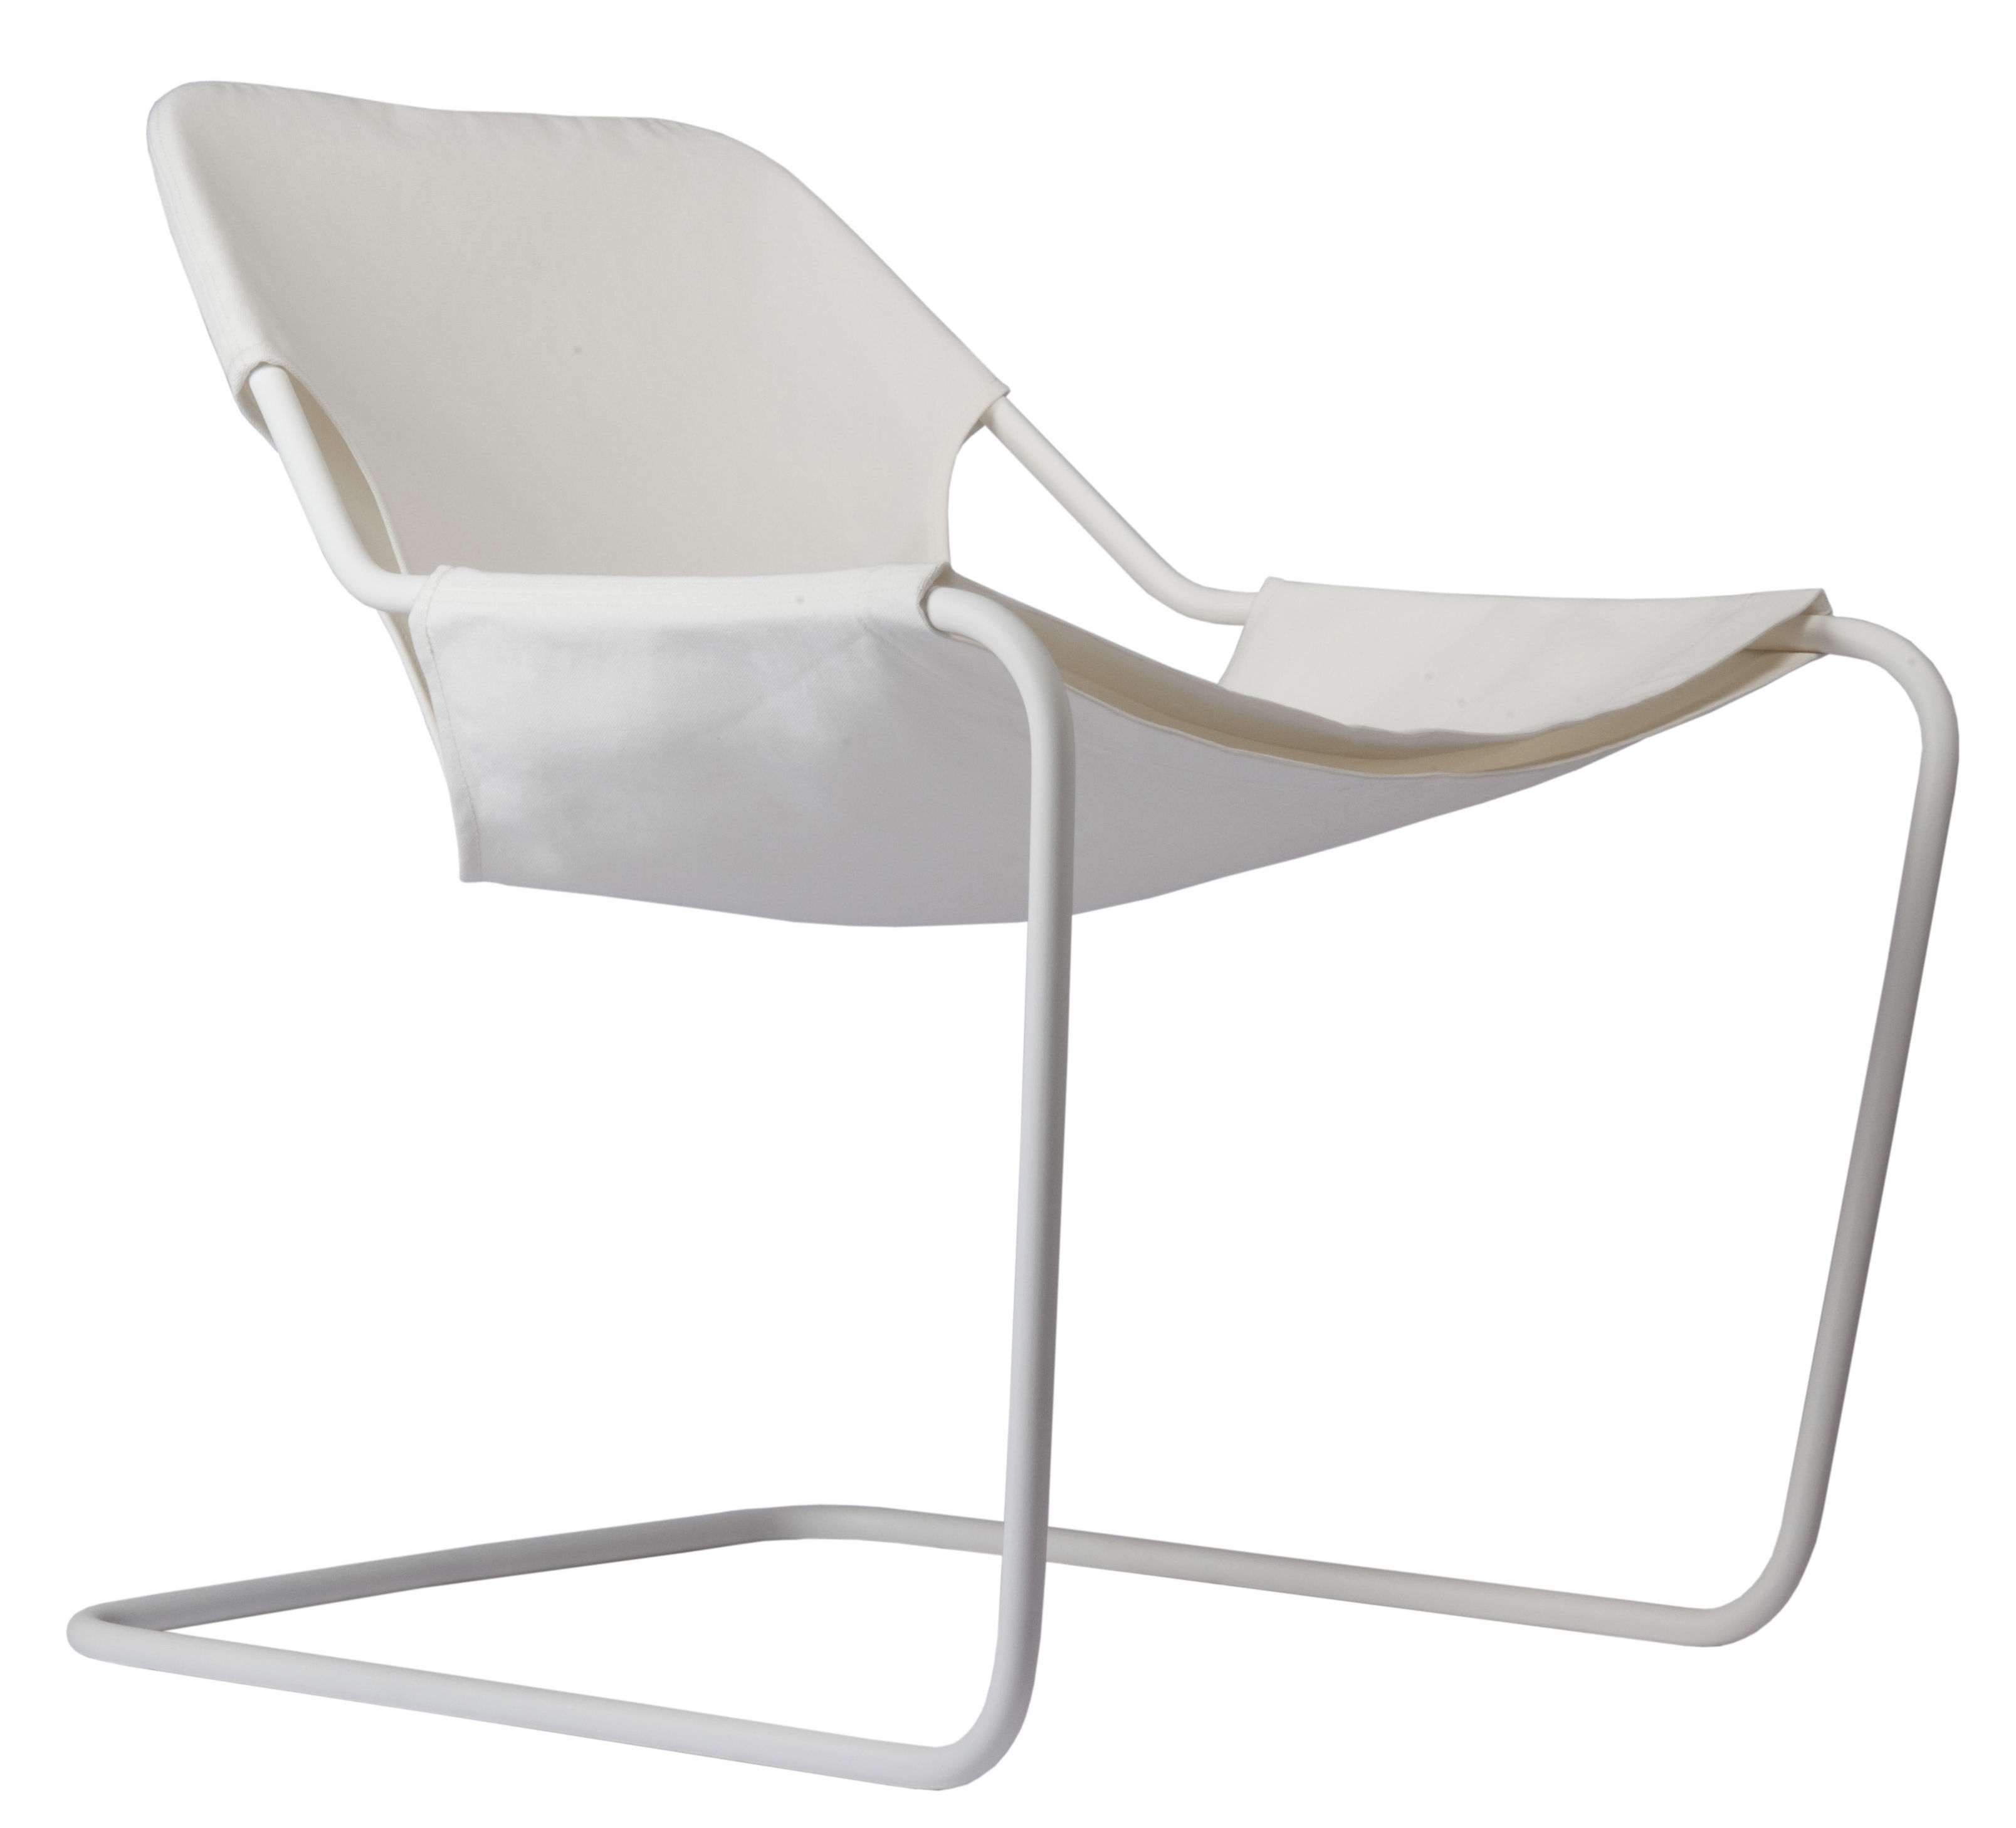 Furniture - Armchairs - Paulistano Outdoor Armchair by Objekto - White / White structure - Carbon, Cotton